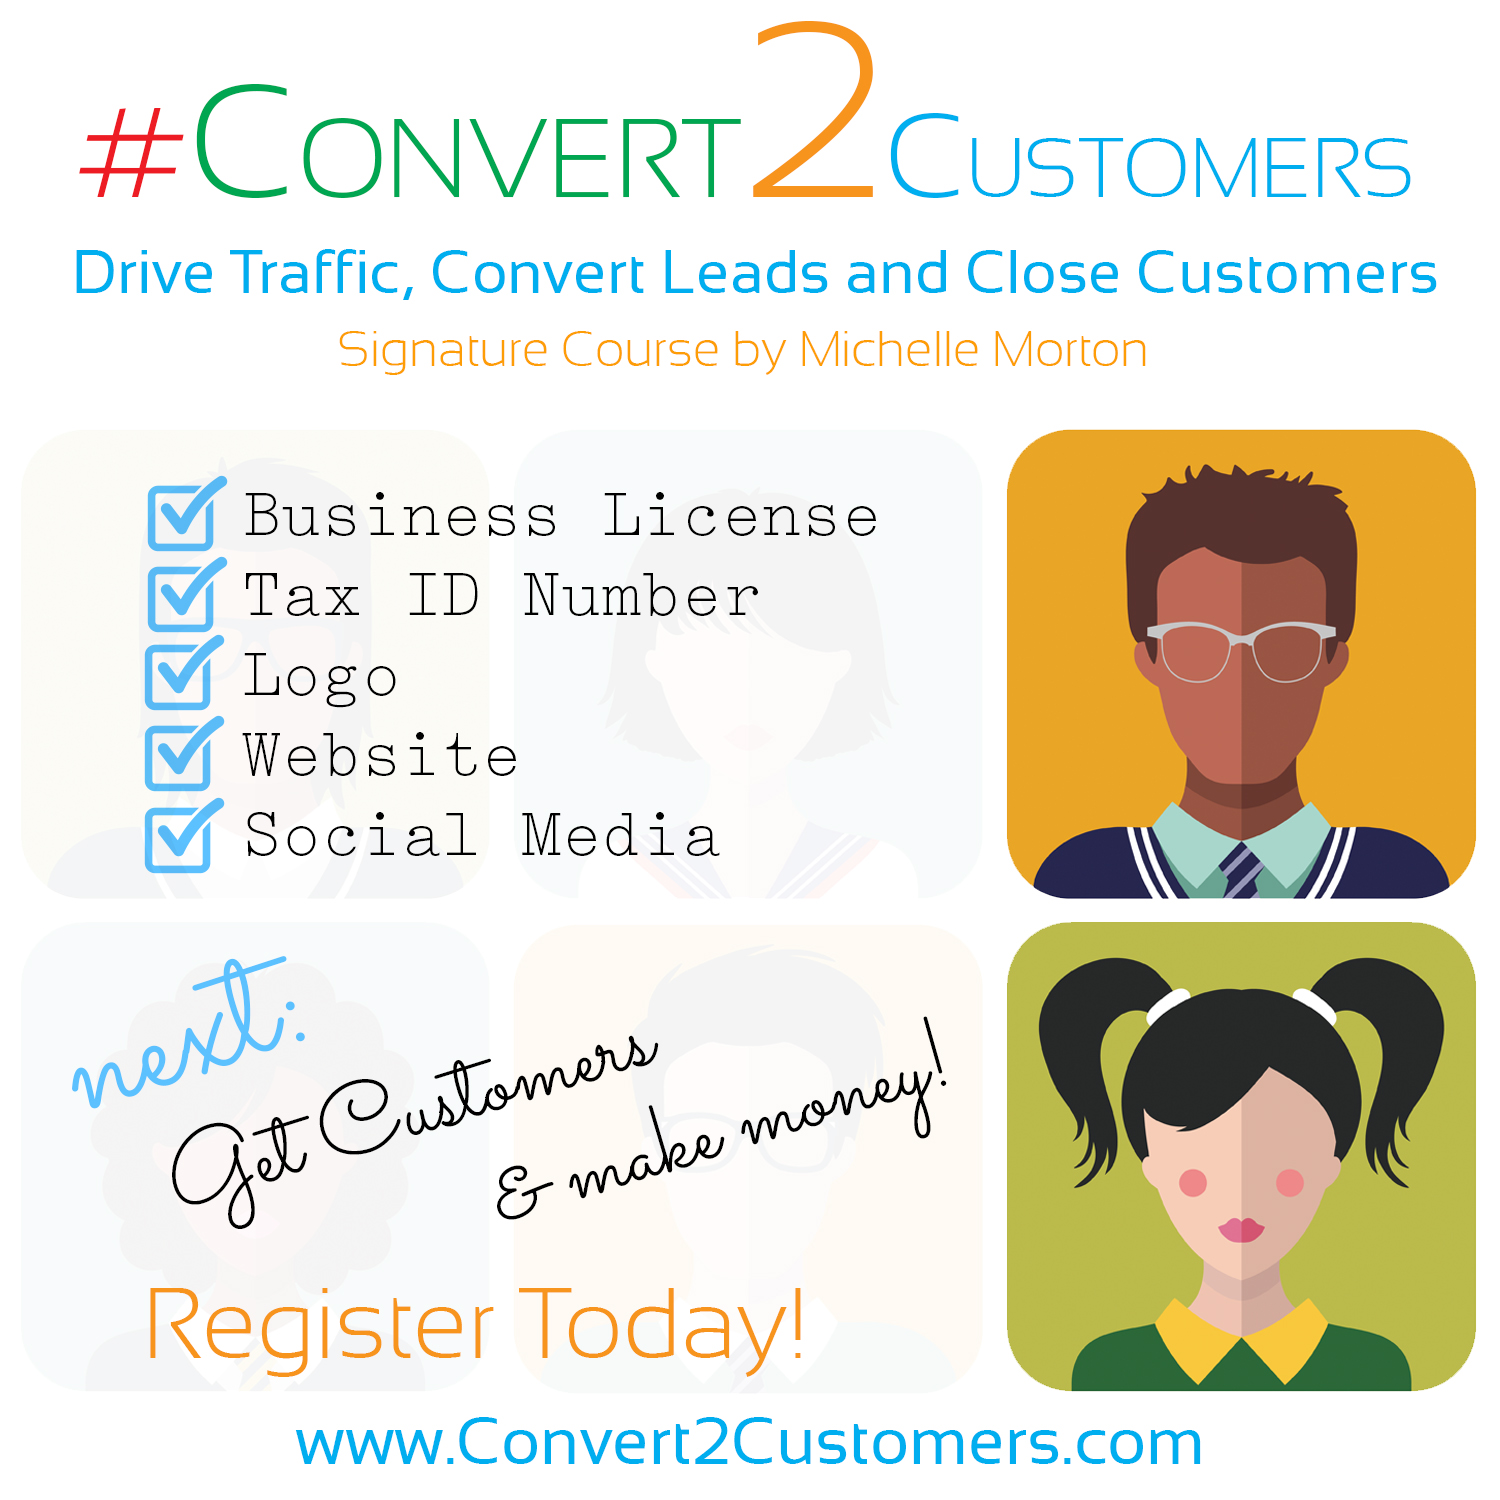 Drive Traffic, Convert Leads and Close Customers